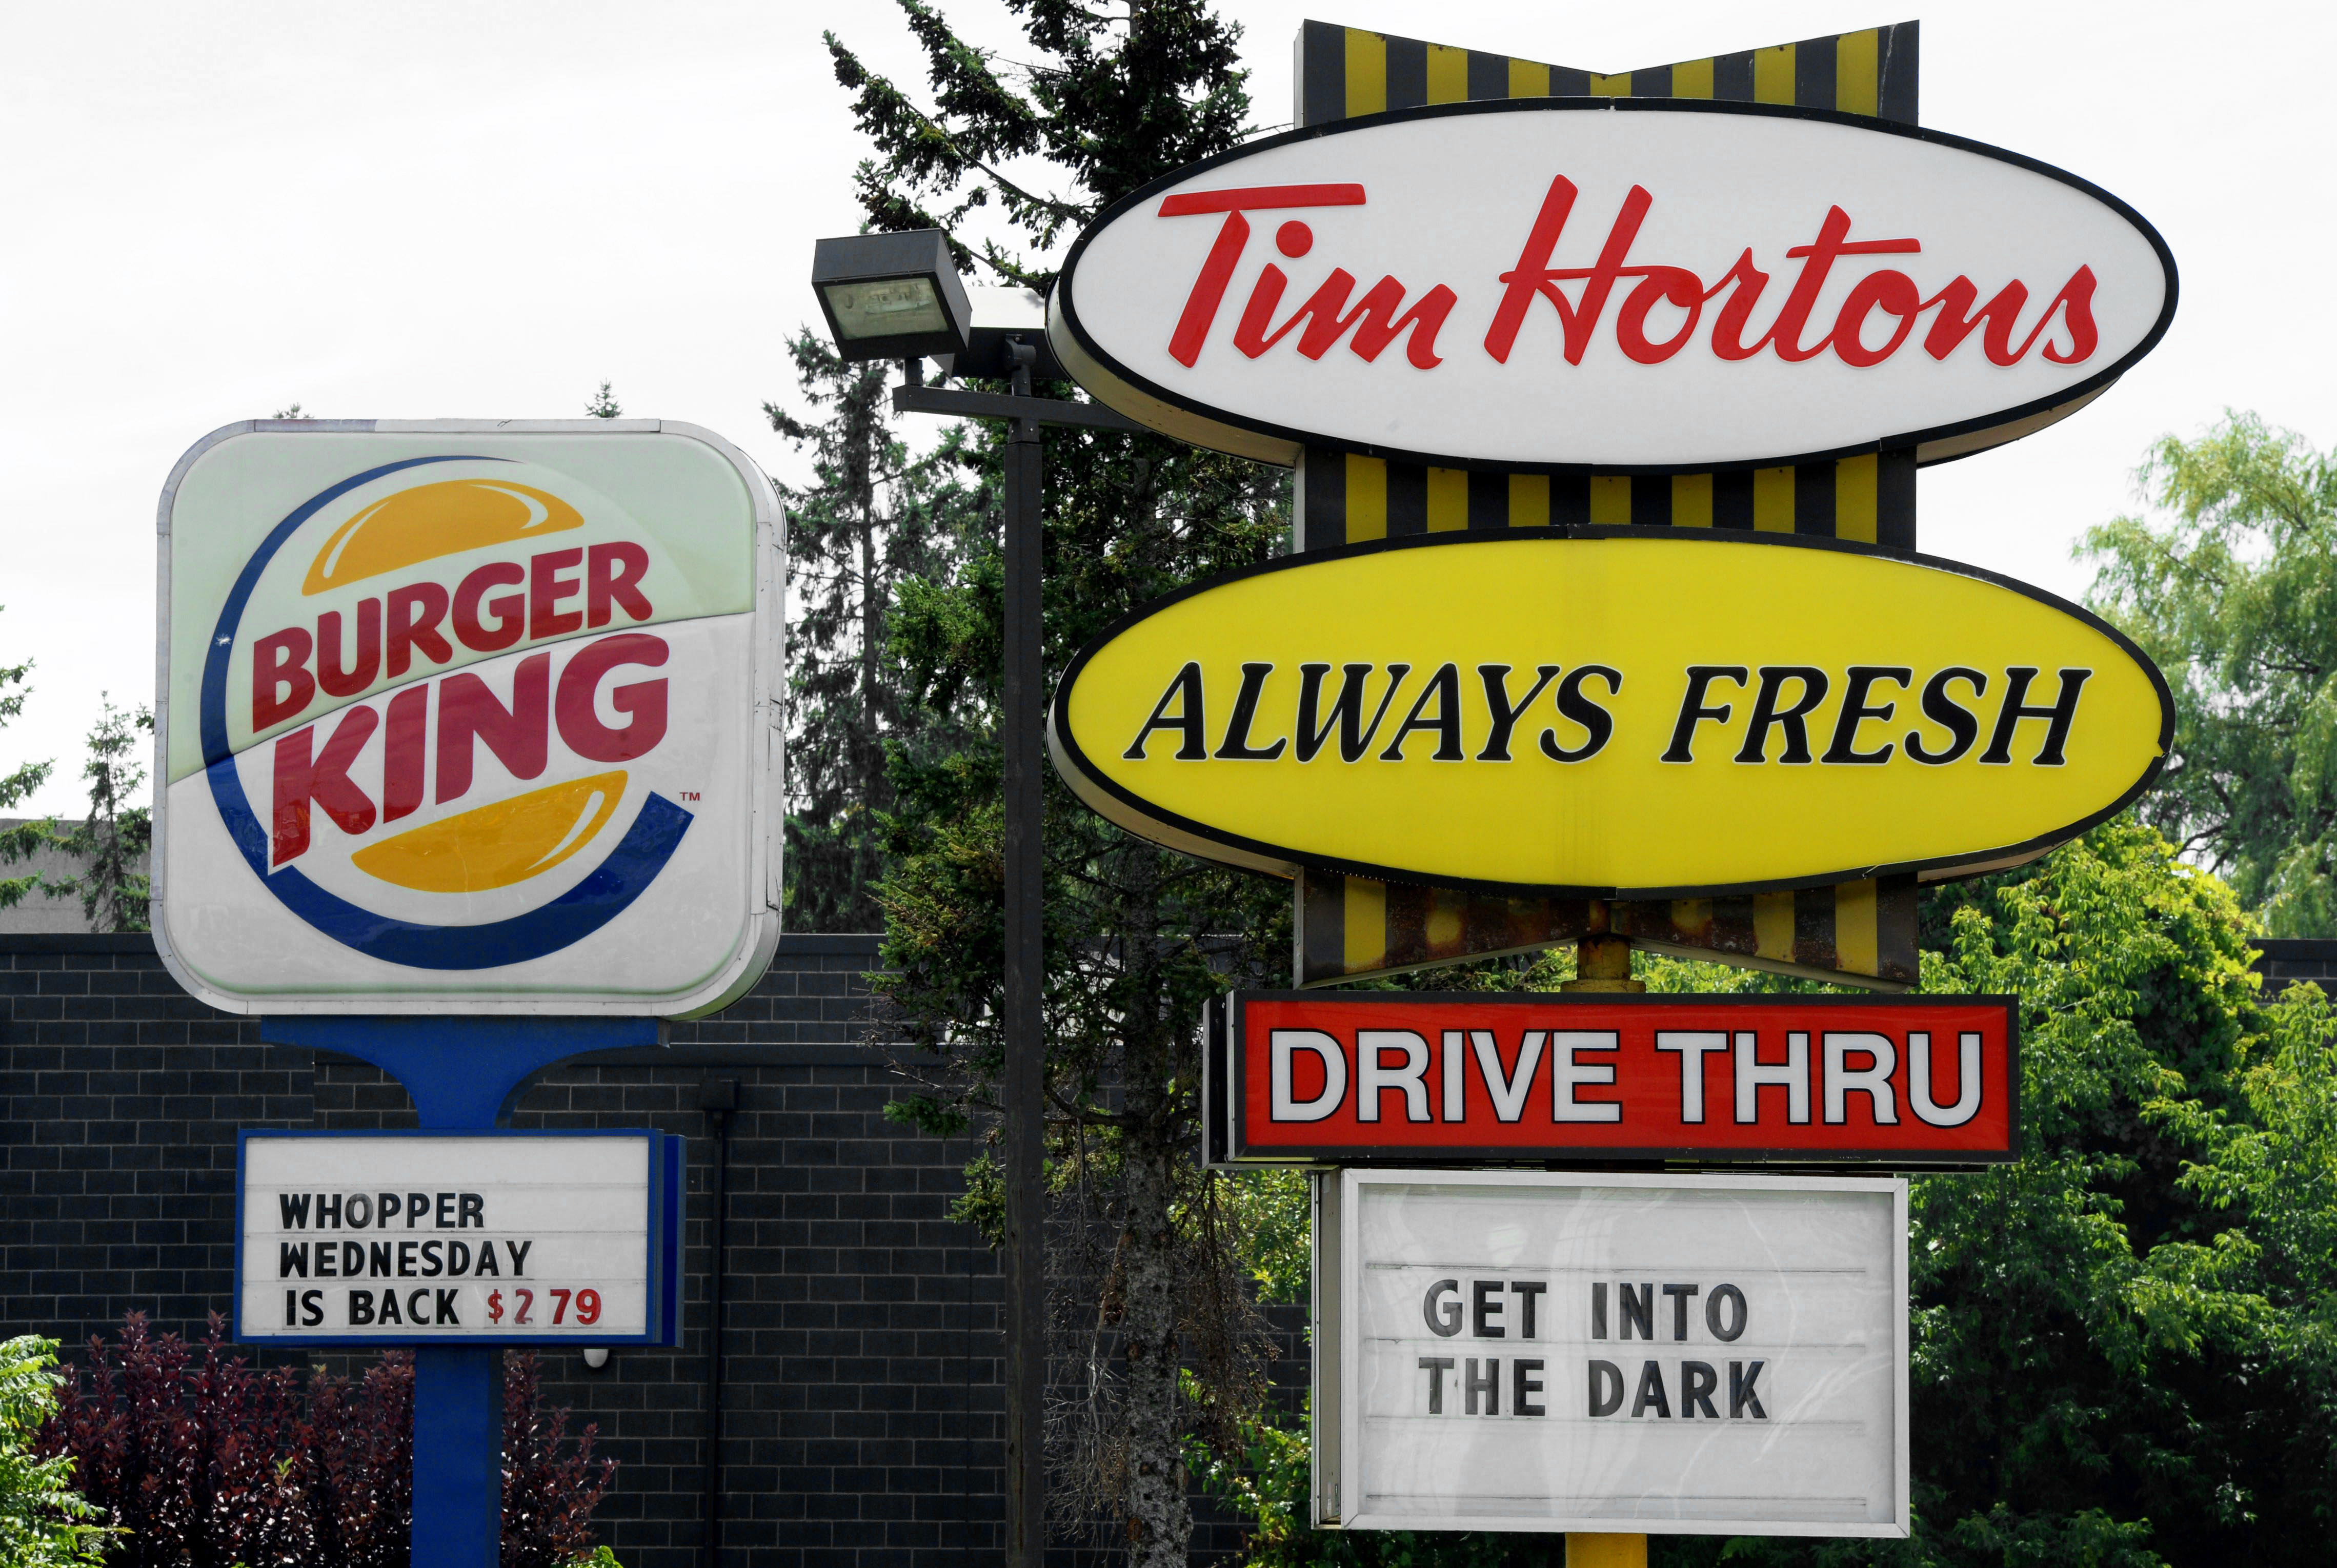 A Burger King sign and a Tim Hortons sign are displayed on St. Laurent Boulevard in Ottawa, Canada on Aug. 25, 2014.